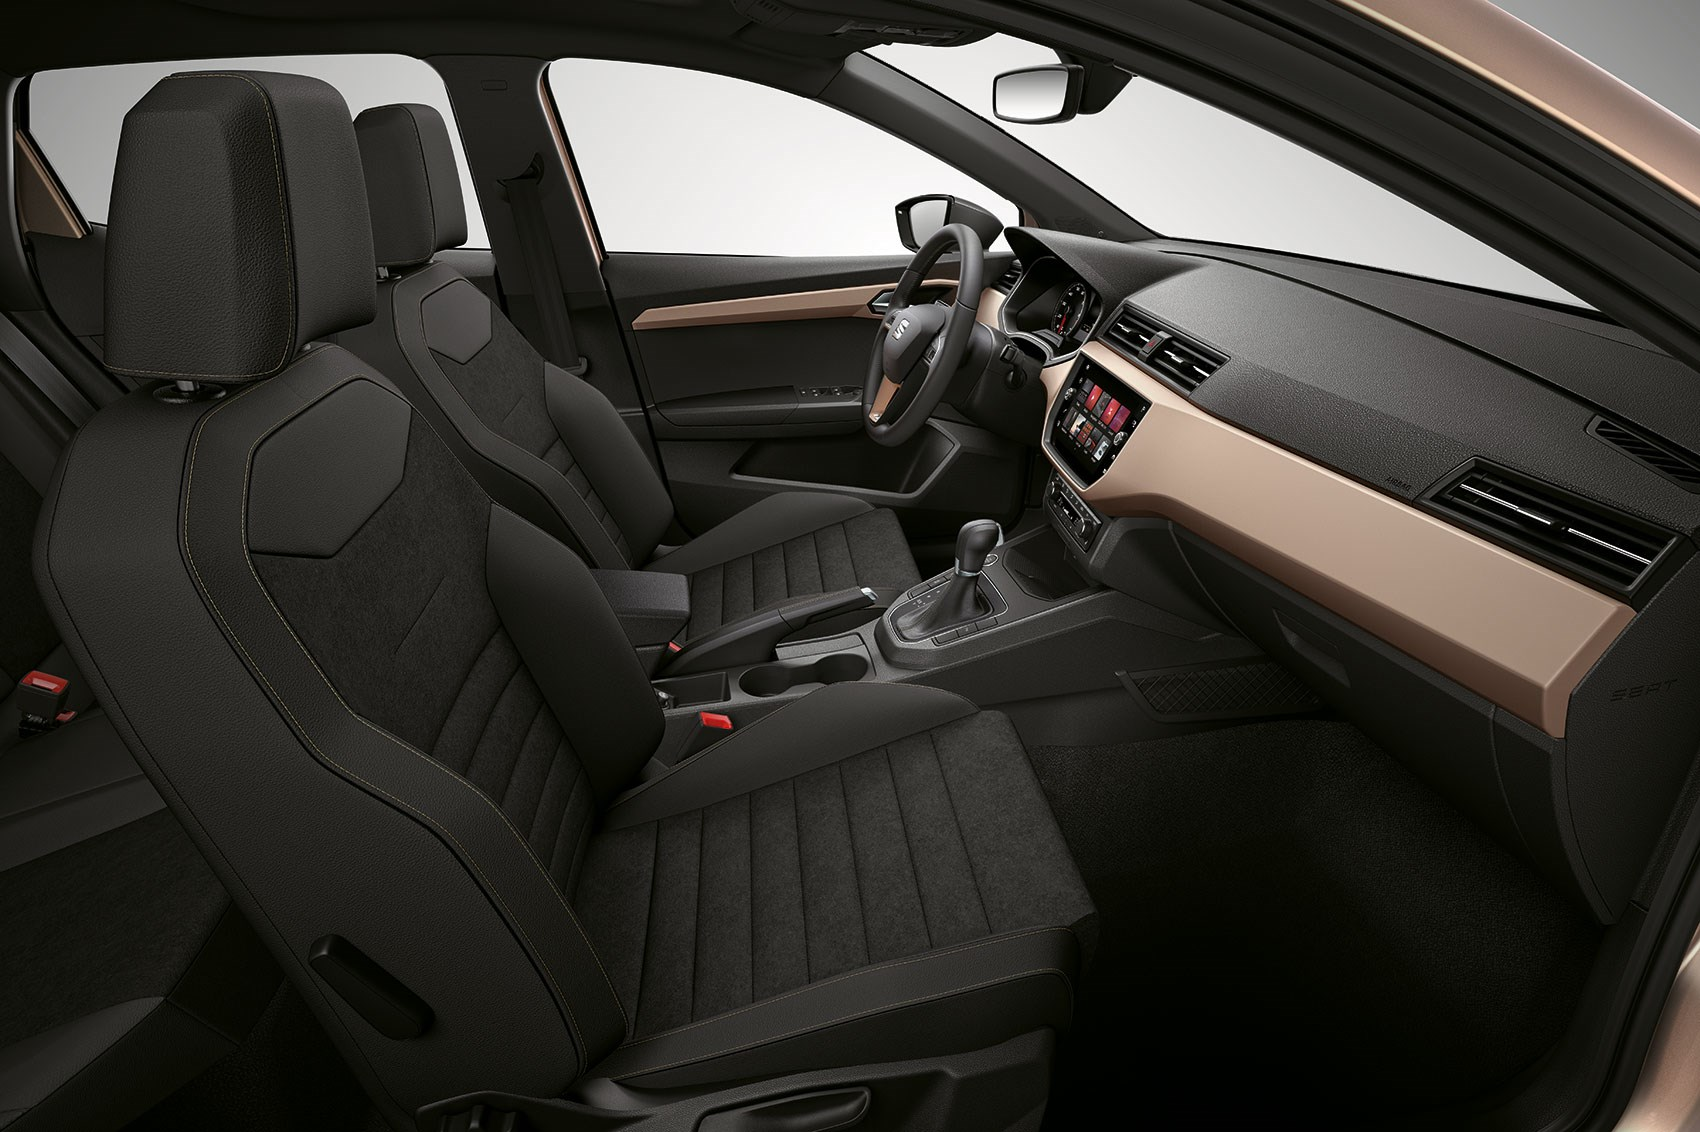 New seat ibiza revealed a little leon for 2017 by car for Interieur seat ibiza cupra